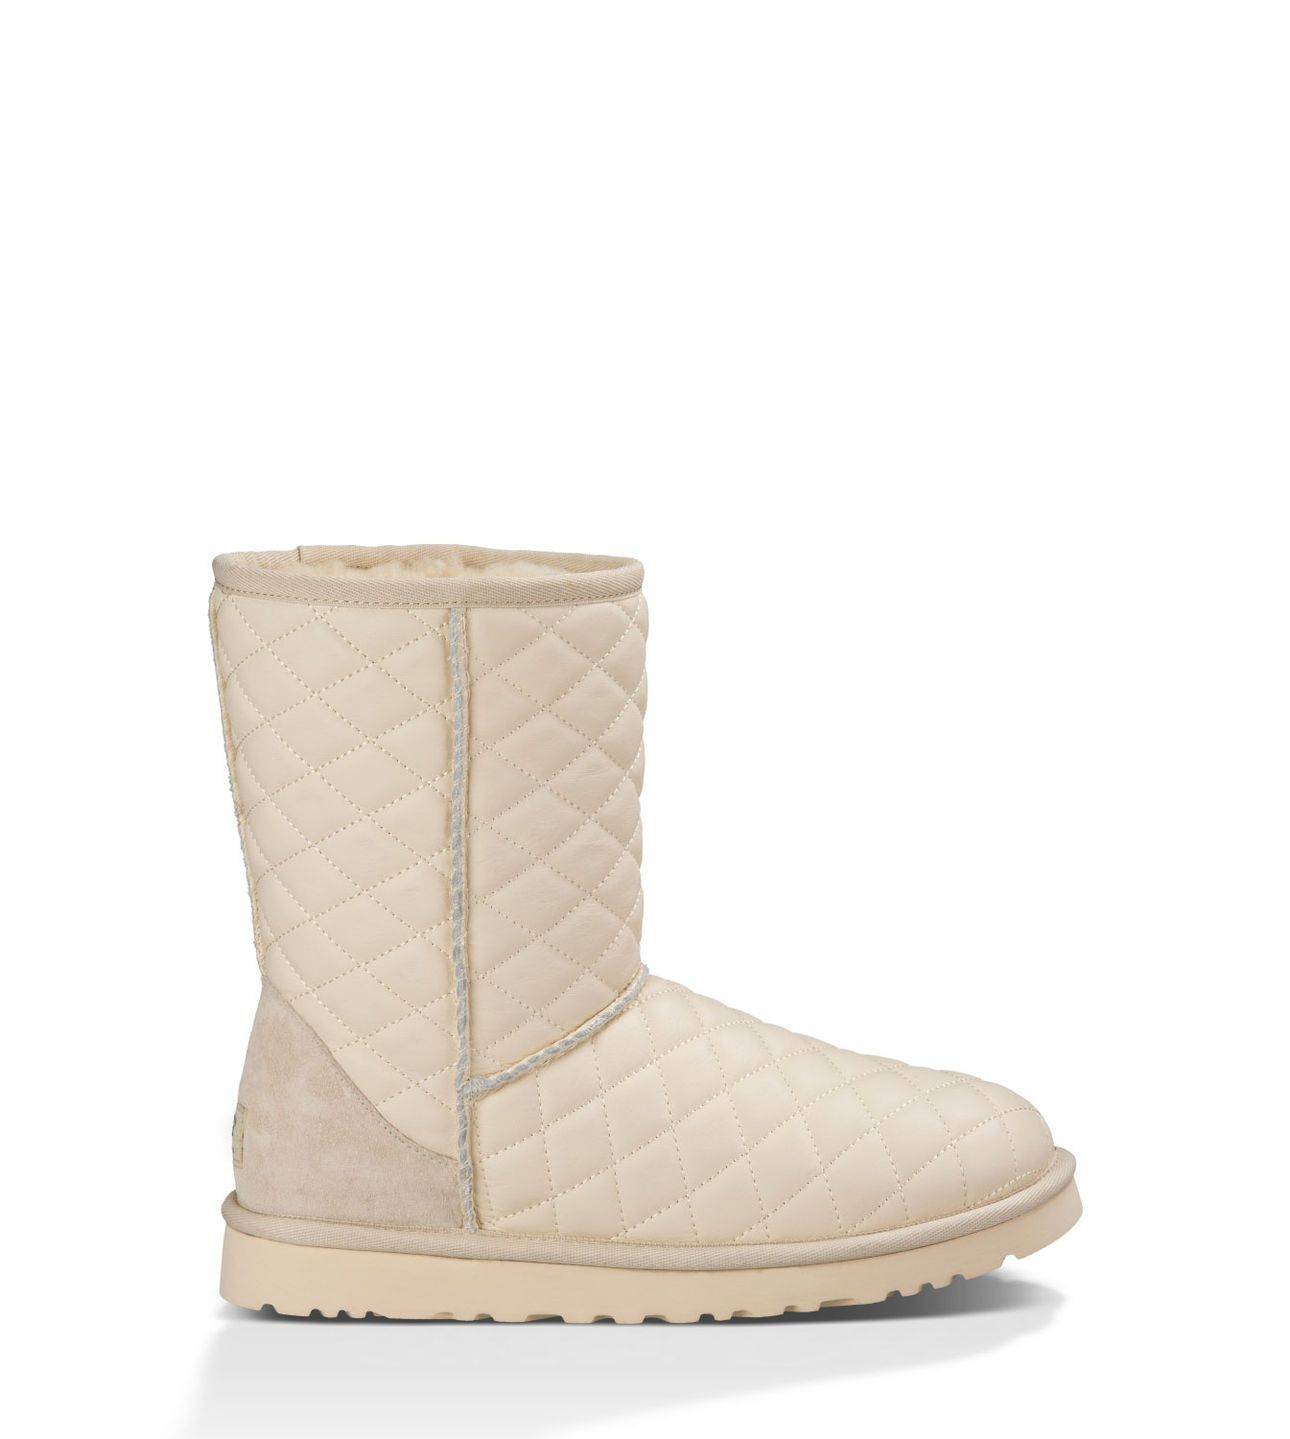 With the soft, cozy lining made from genuine shearling, these UGG knit boots are sure to keep the feet warm and comfortable for the colder months ahead.